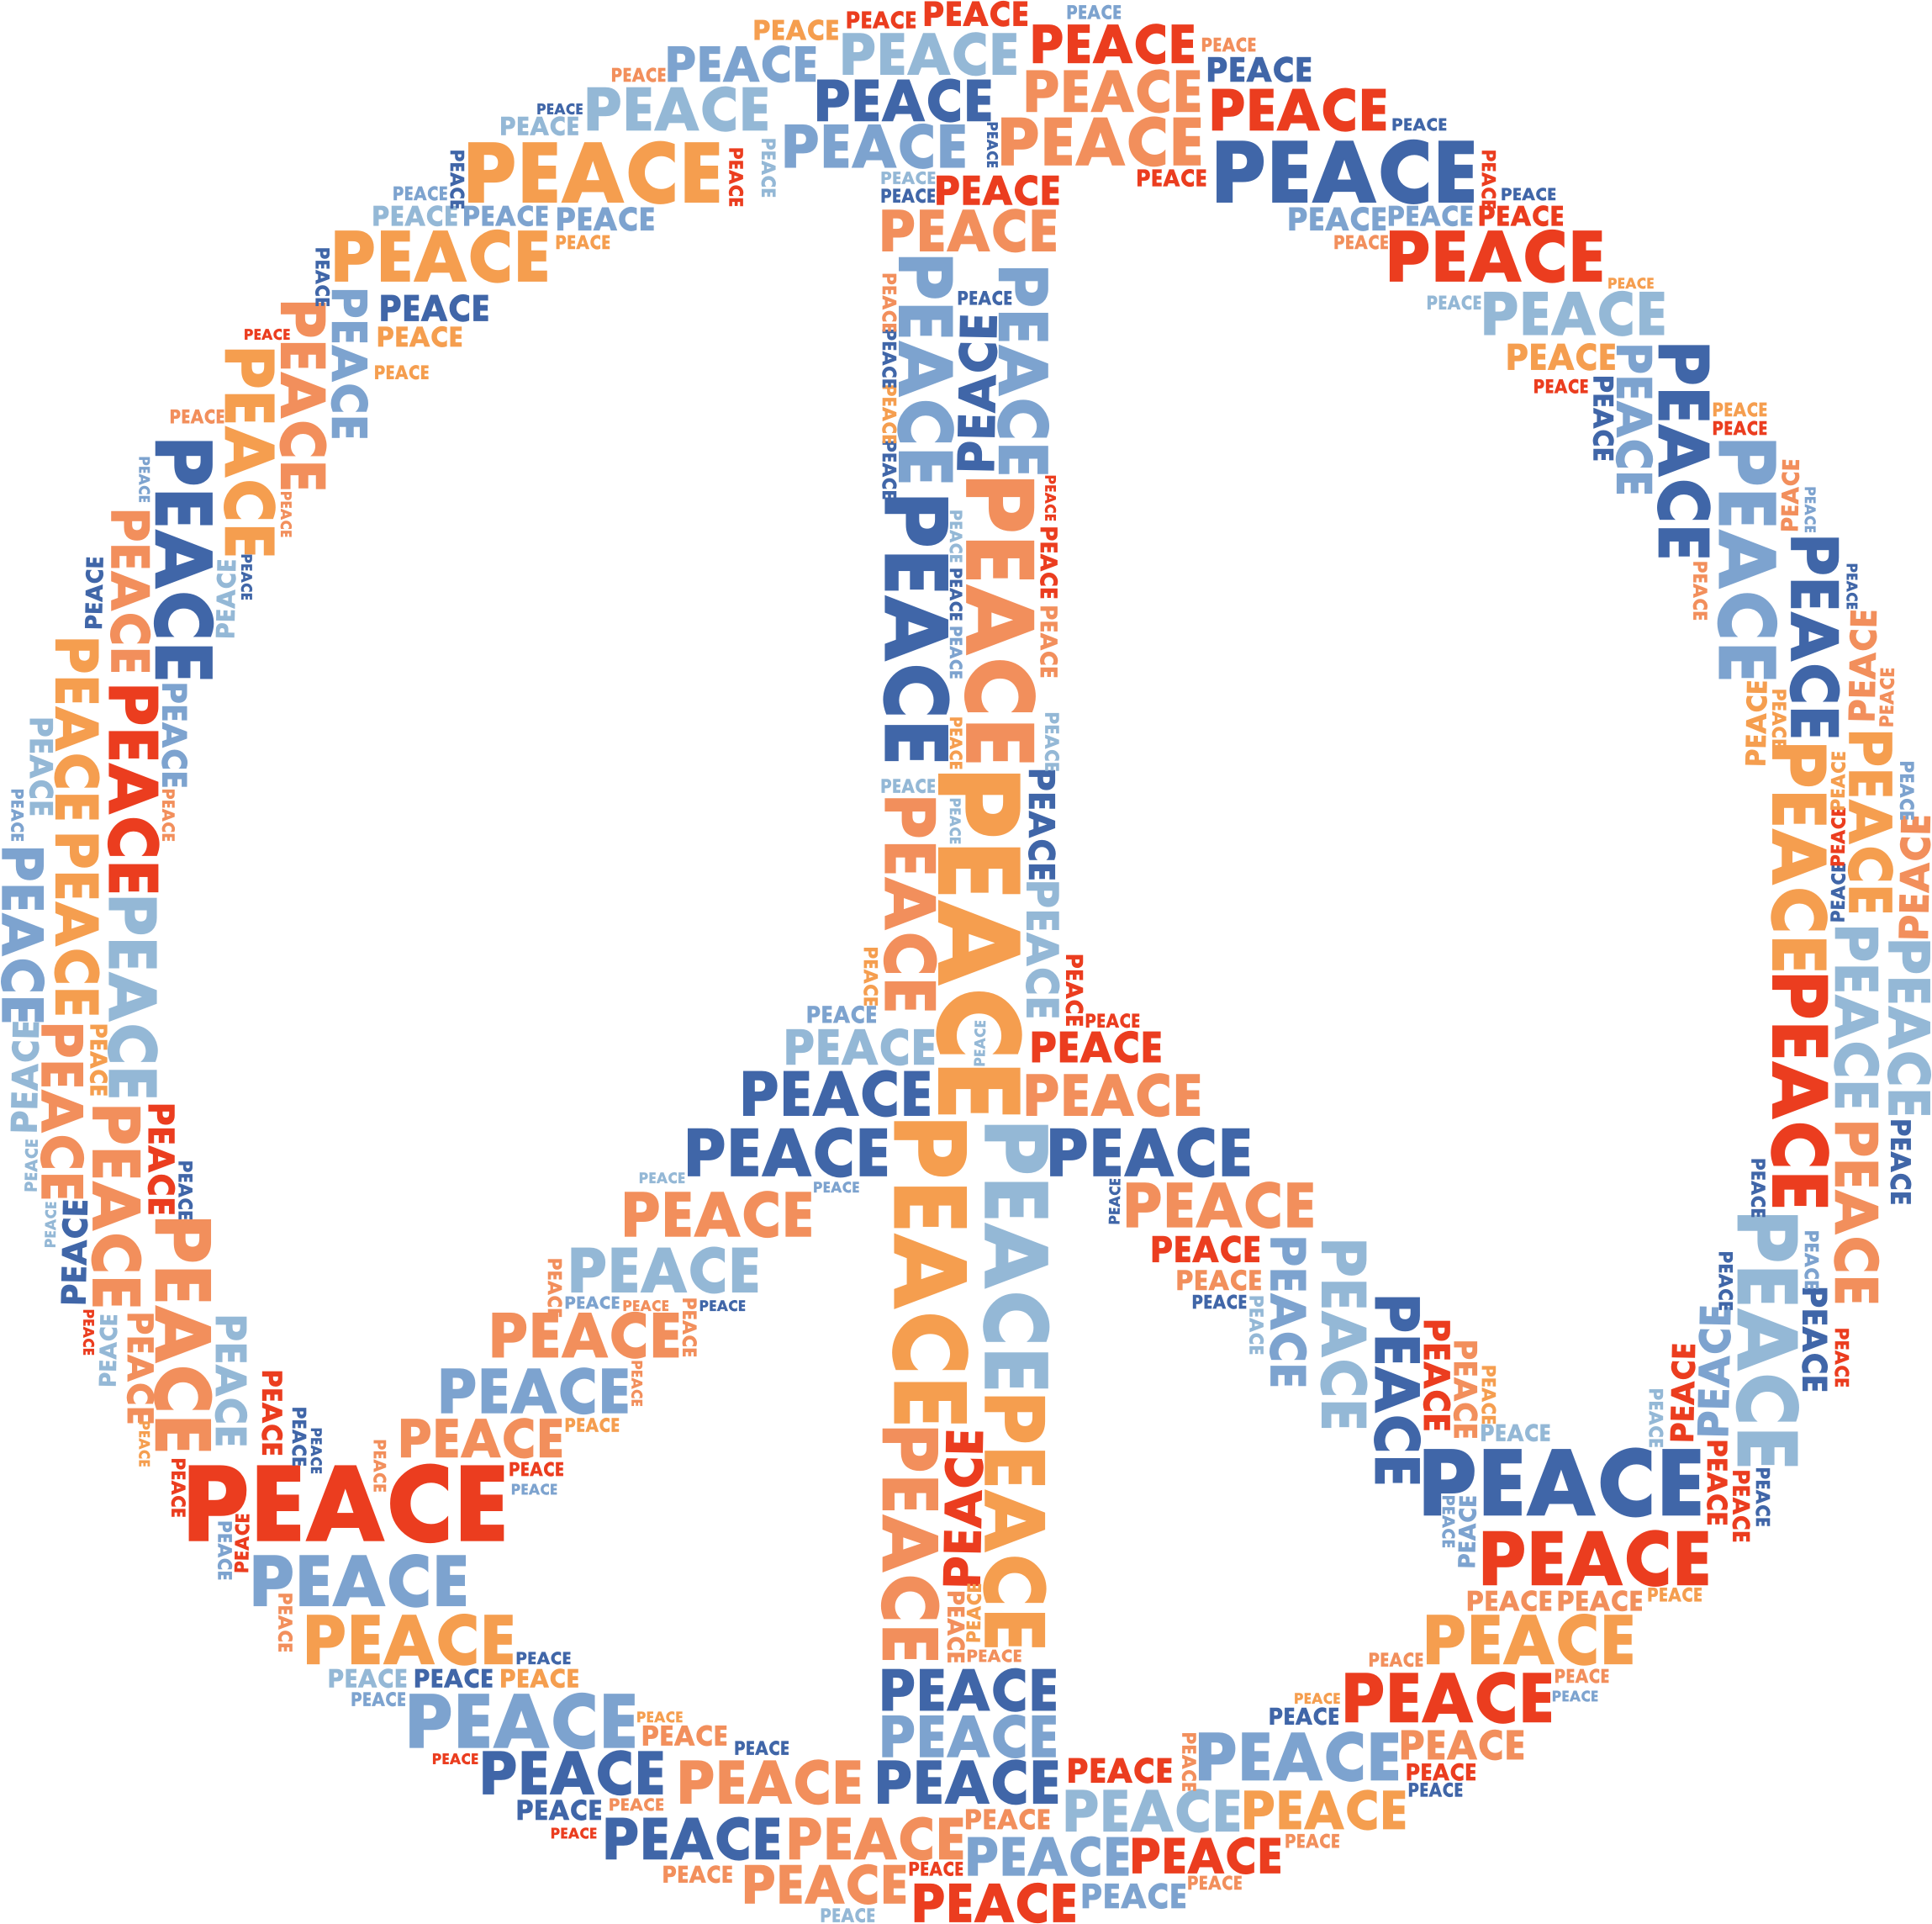 Words clipart peace. Text symbol sign image